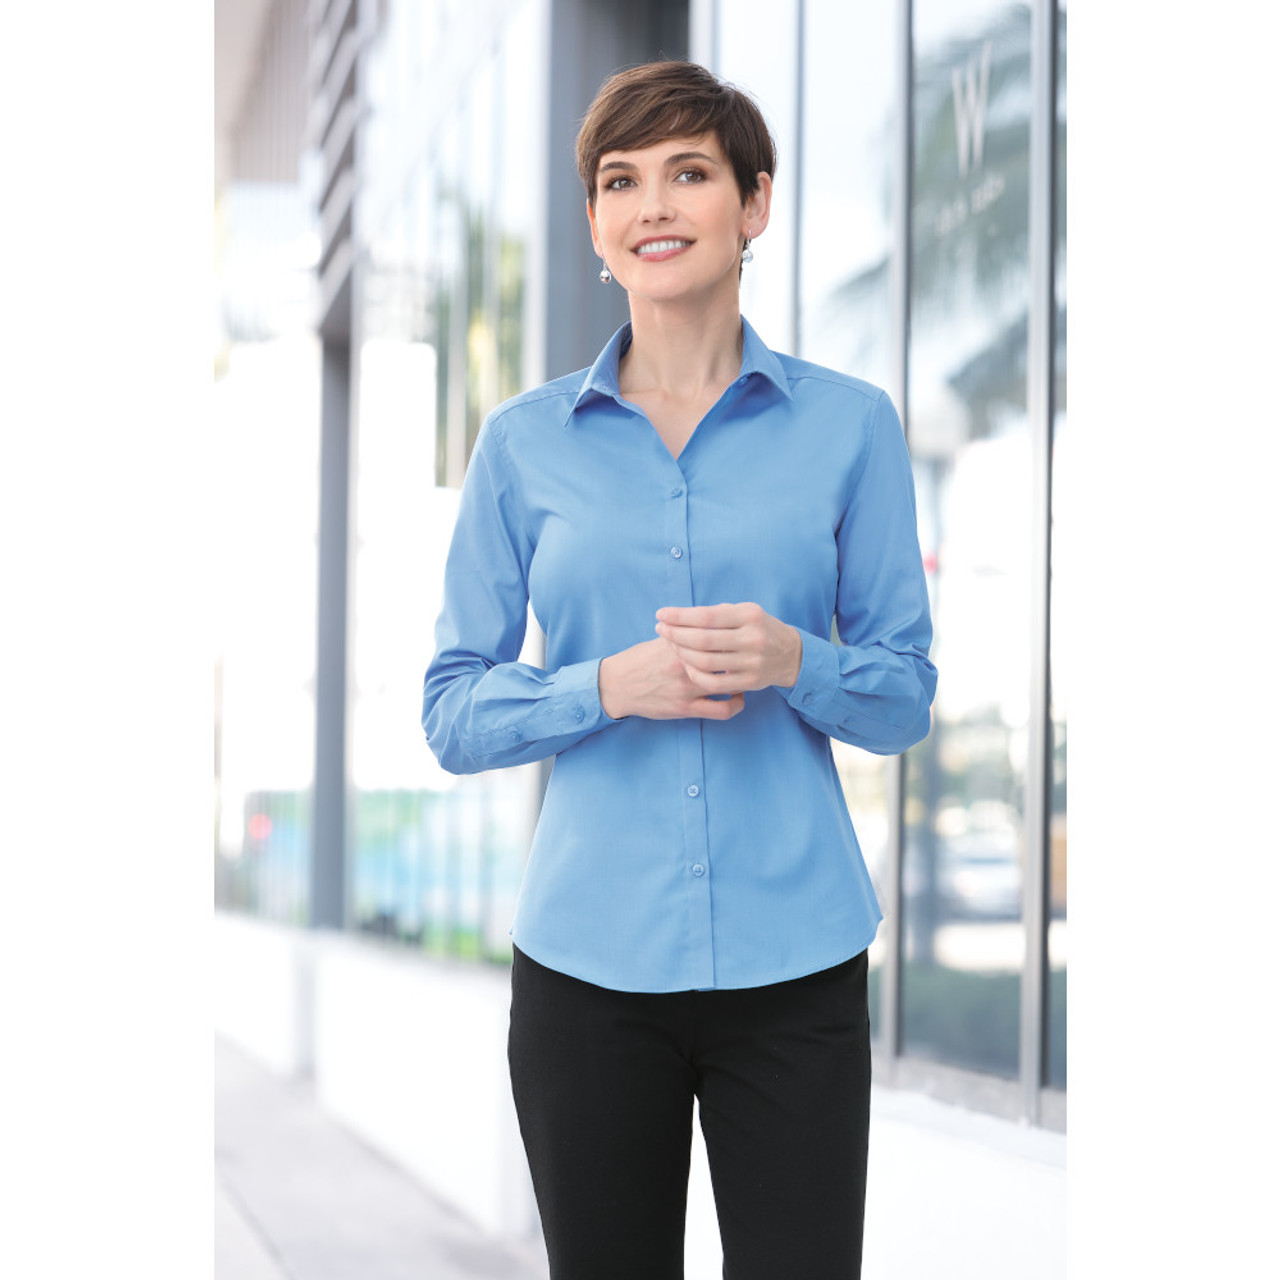 LW100 Stain Release Work Shirt